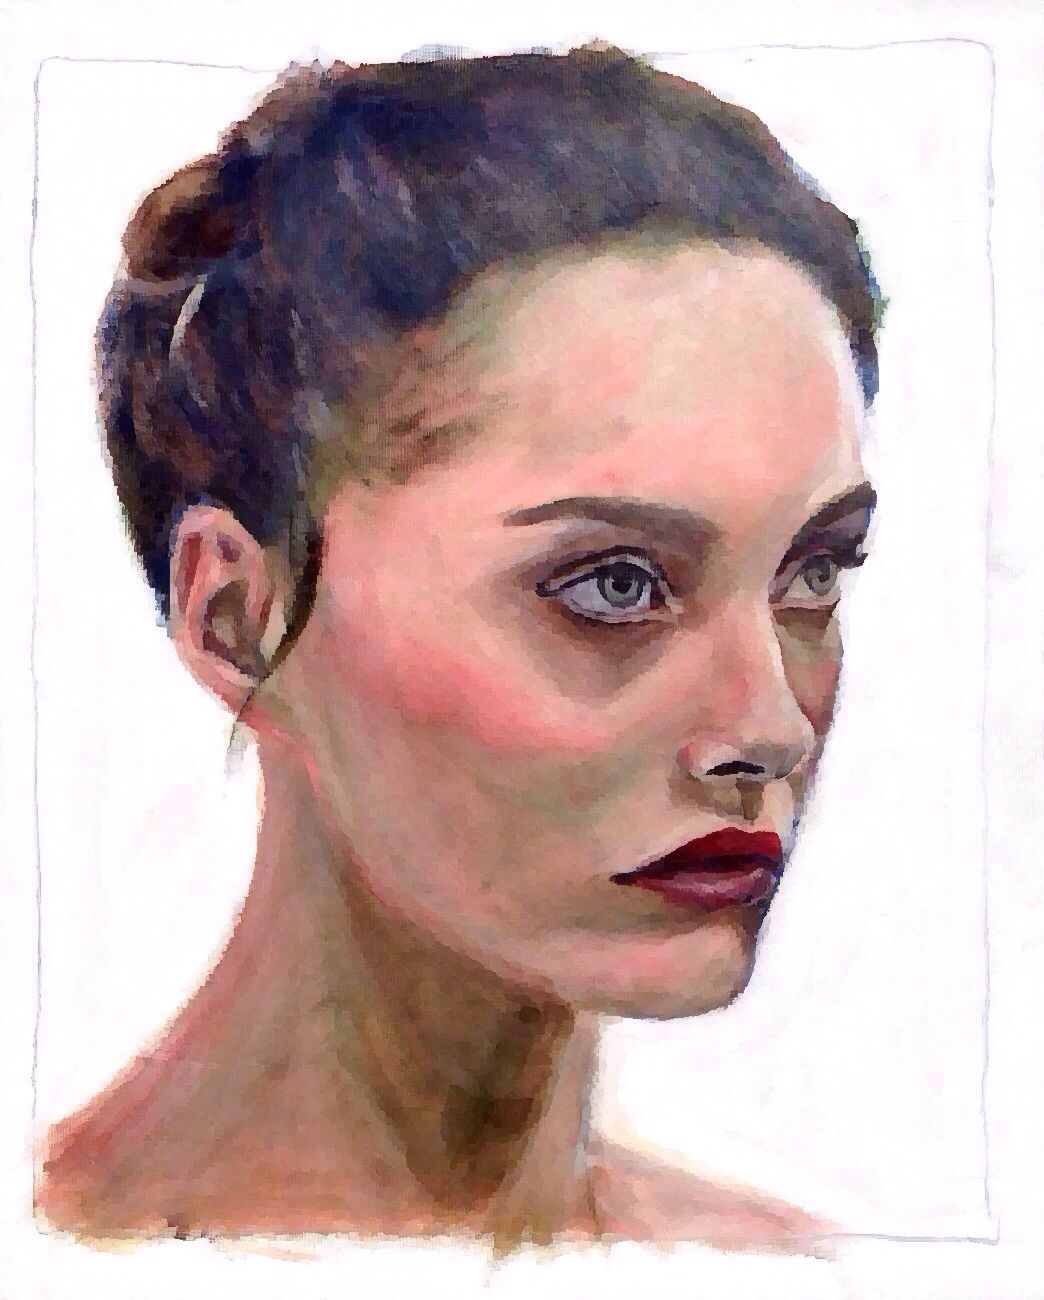 Beautiful facial expression of Estonian fashion model Karmen Pedaru, acrylic on paper 40x50